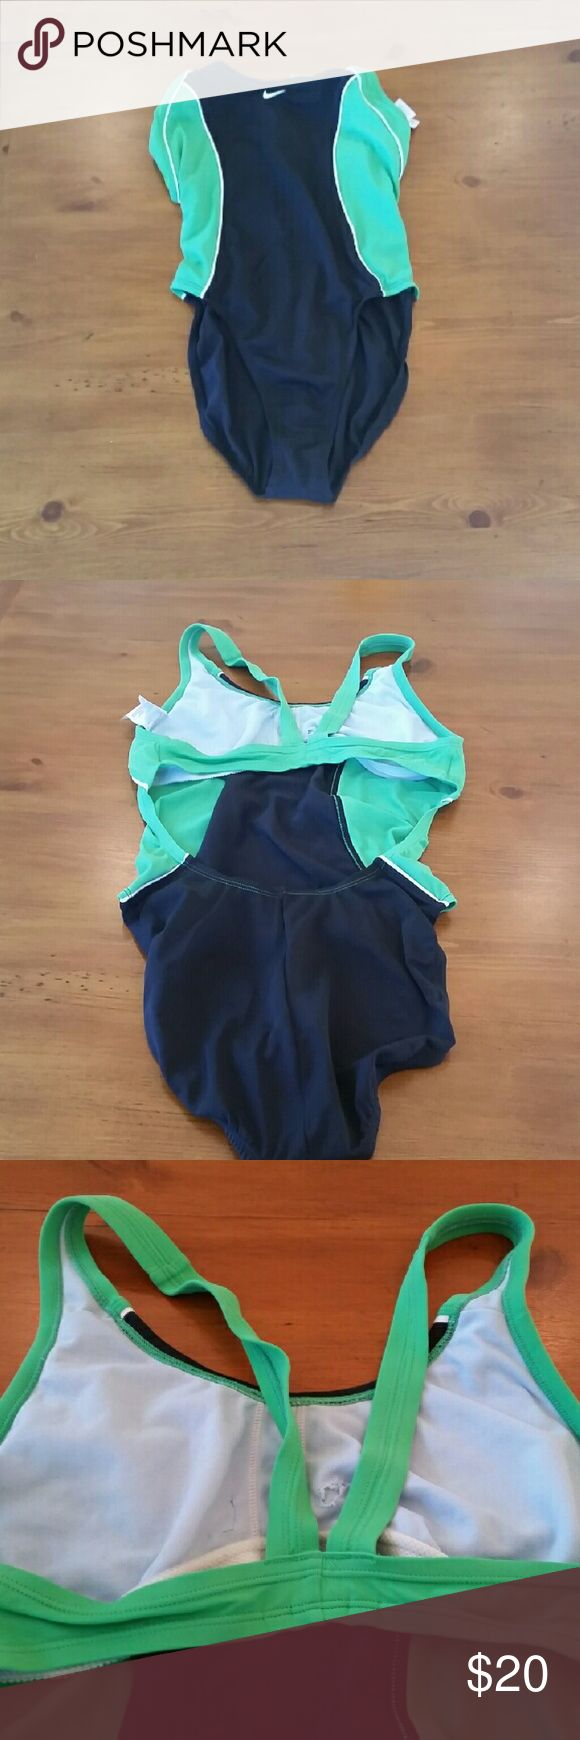 Nike Racing Swimsuit Green and black Nike racing swimsuit. In good condition. Worn to practice a few times before the team suits came in. Small holes made inside to take those obnoxious booby cups out... as seen in 3rd photo. Nike Swim One Pieces